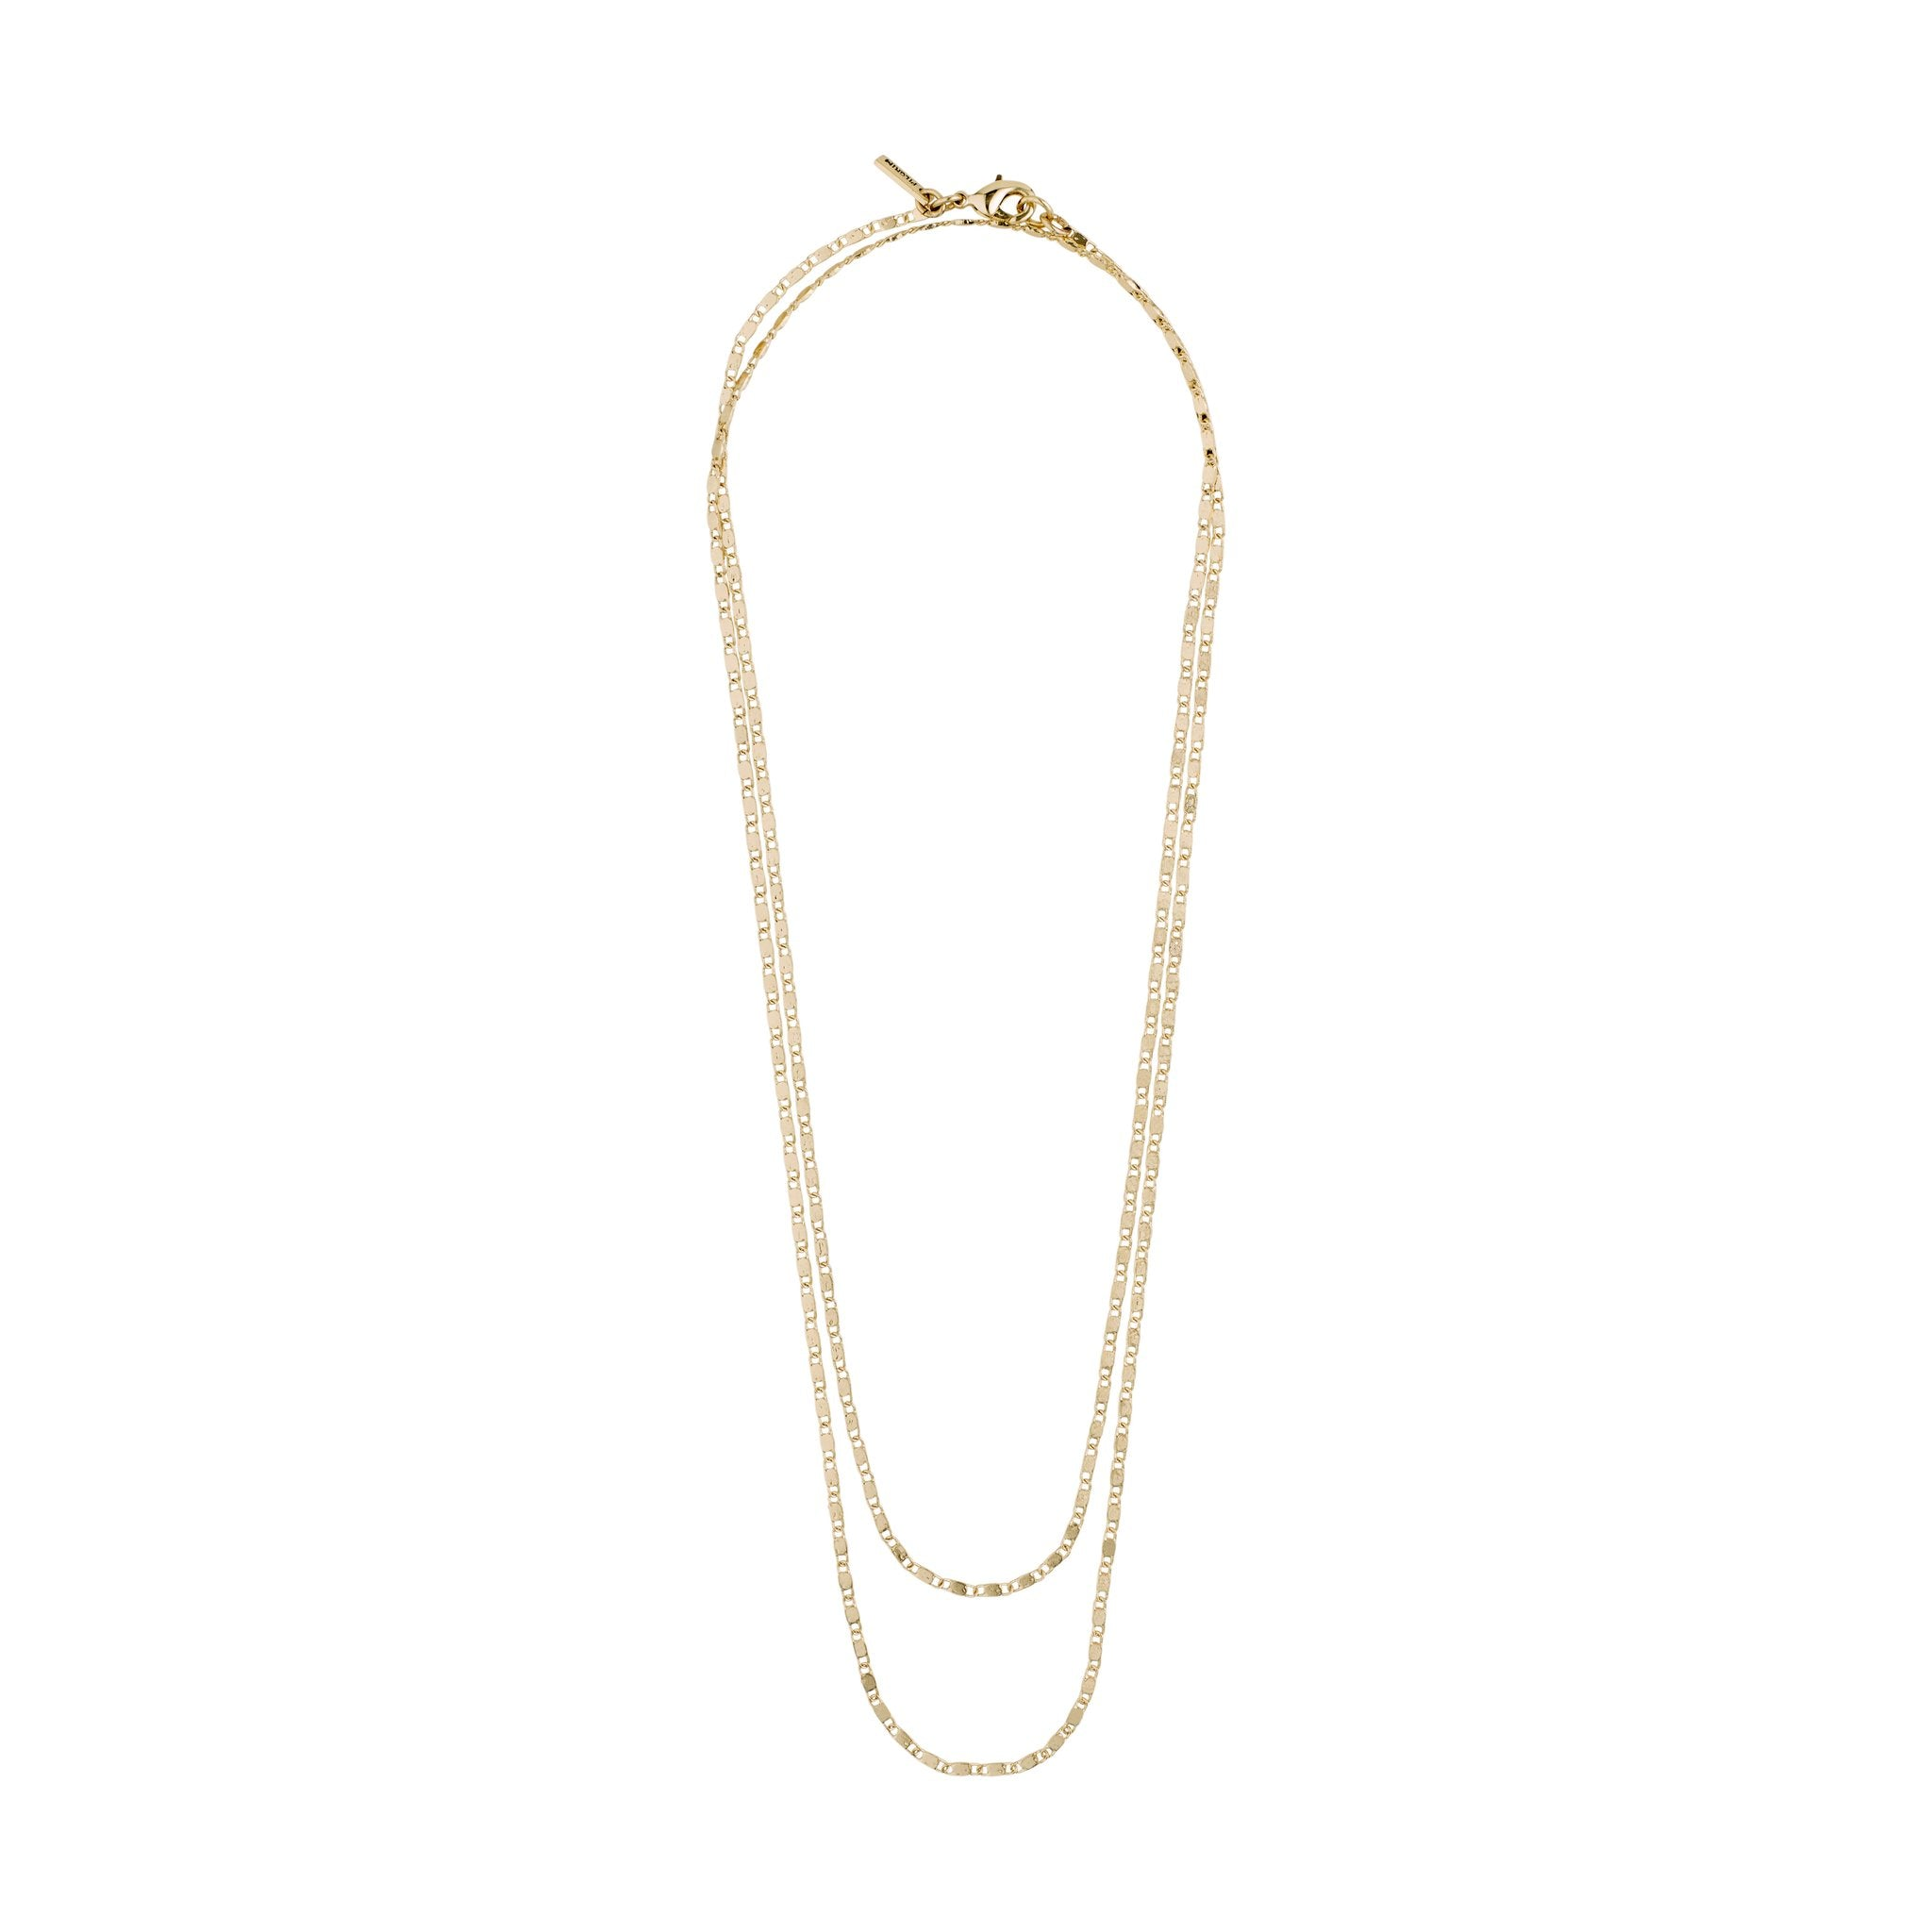 Parisa Necklace - Gold Plated